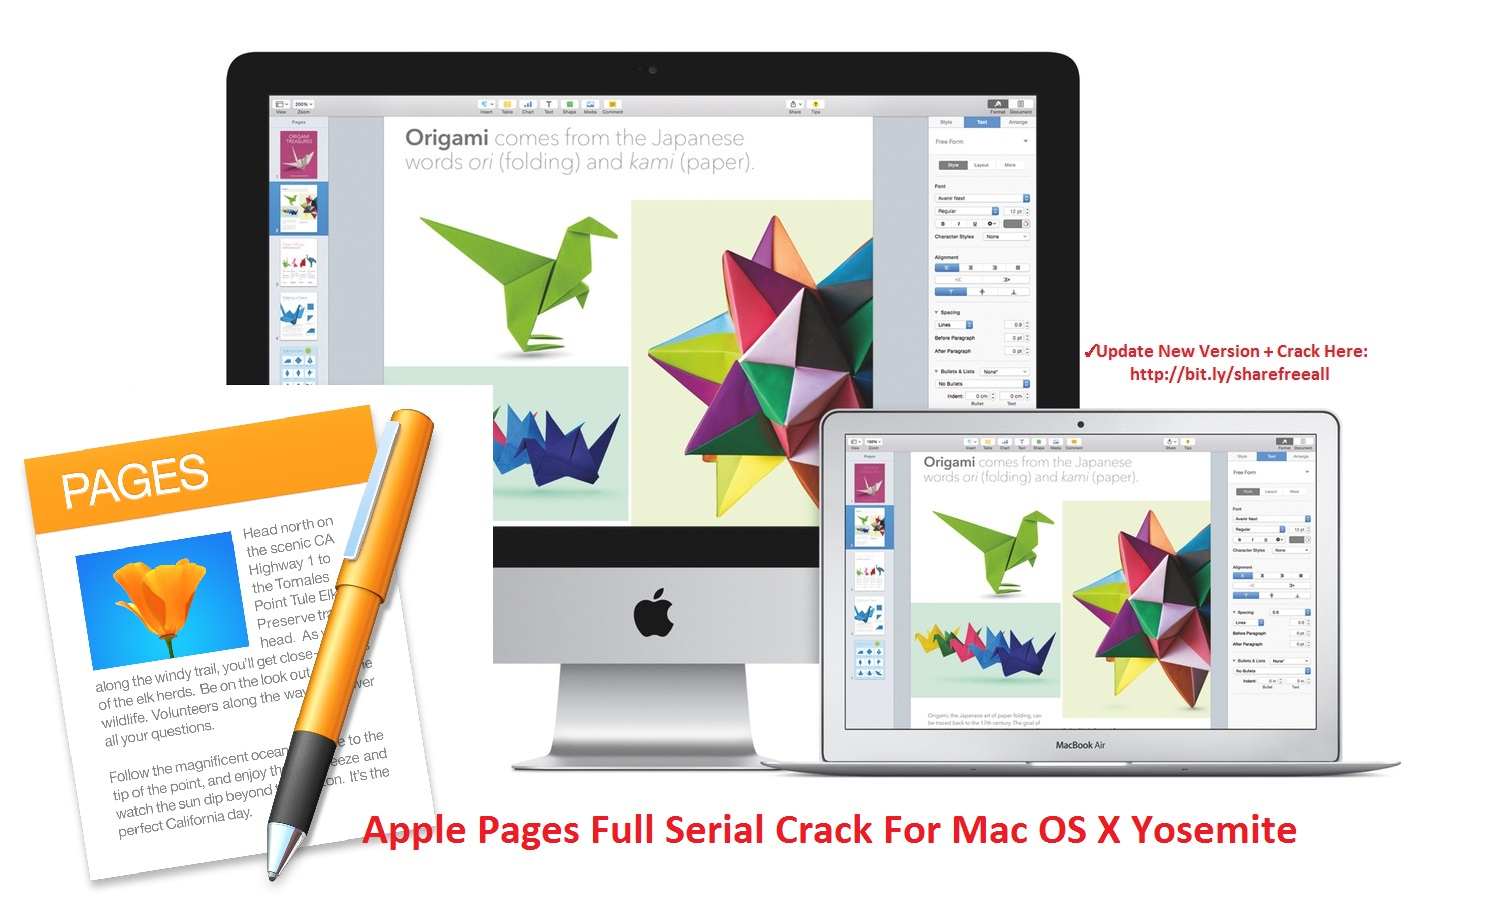 apple pages app for macbook